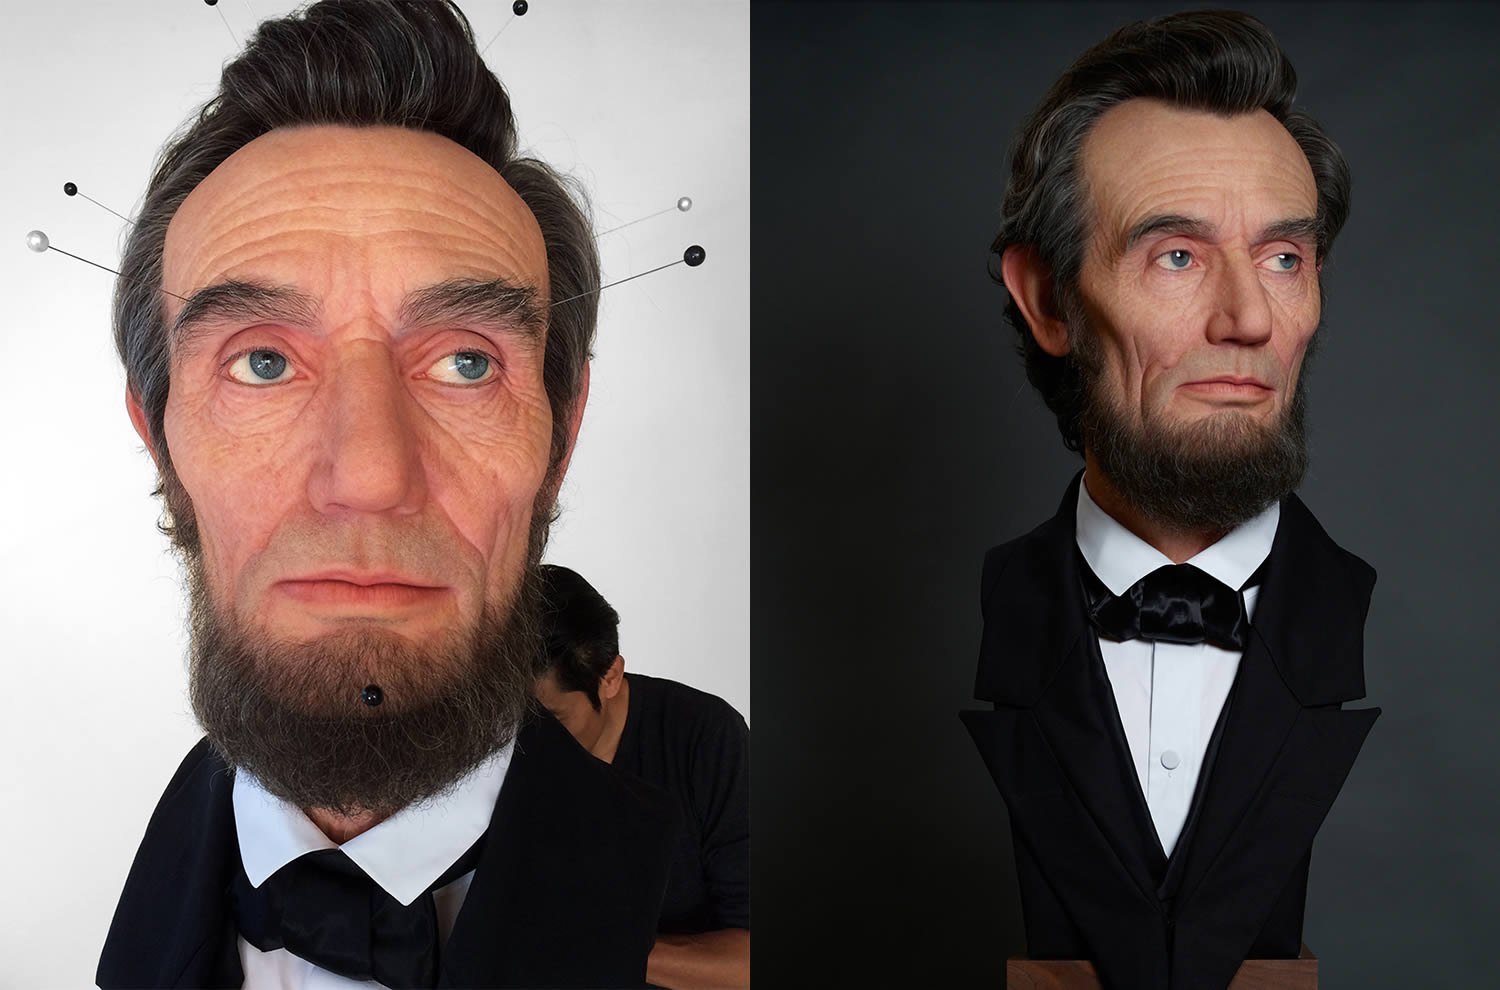 abraham lincoln, artist working on sculpture